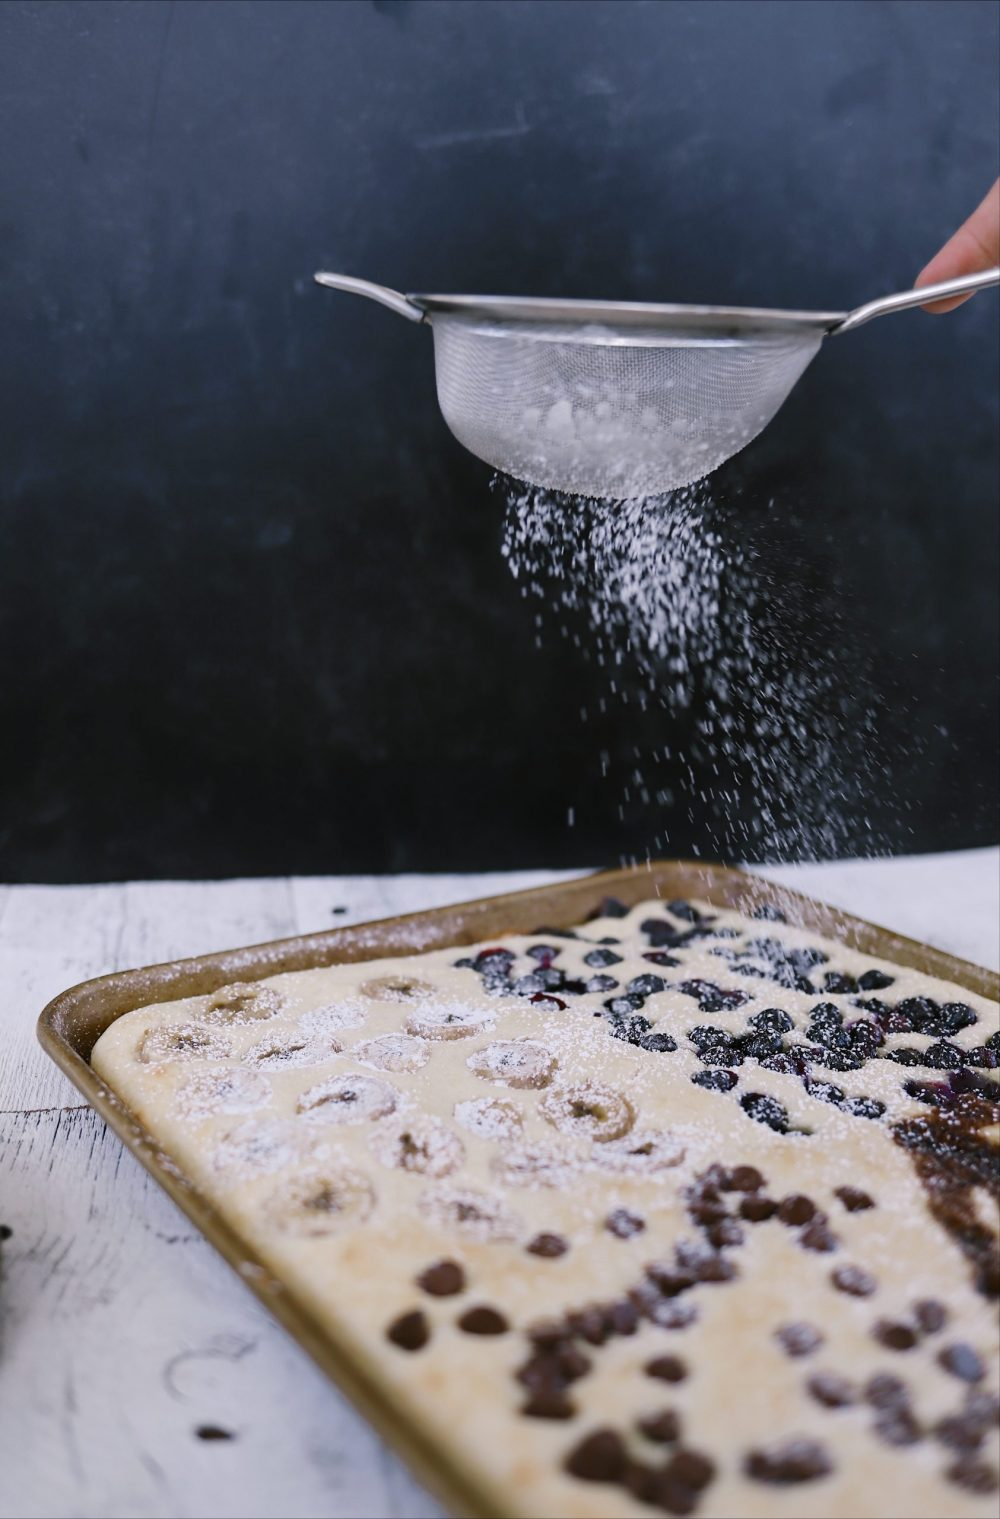 Amazingly Easy Sheet Pan Pancakes With Buttermilk Pancake Mix. Family breakfast ideas with 37 pancake add-in ideas. Big batch breakfast with baked pancakes to feed a crowd. |Krusteaz Buttermilk Pancake Mix by popular Florida lifestyle blog, Fresh Mommy: image of a woman sprinkling powders sugar on sheet pan pancakes.